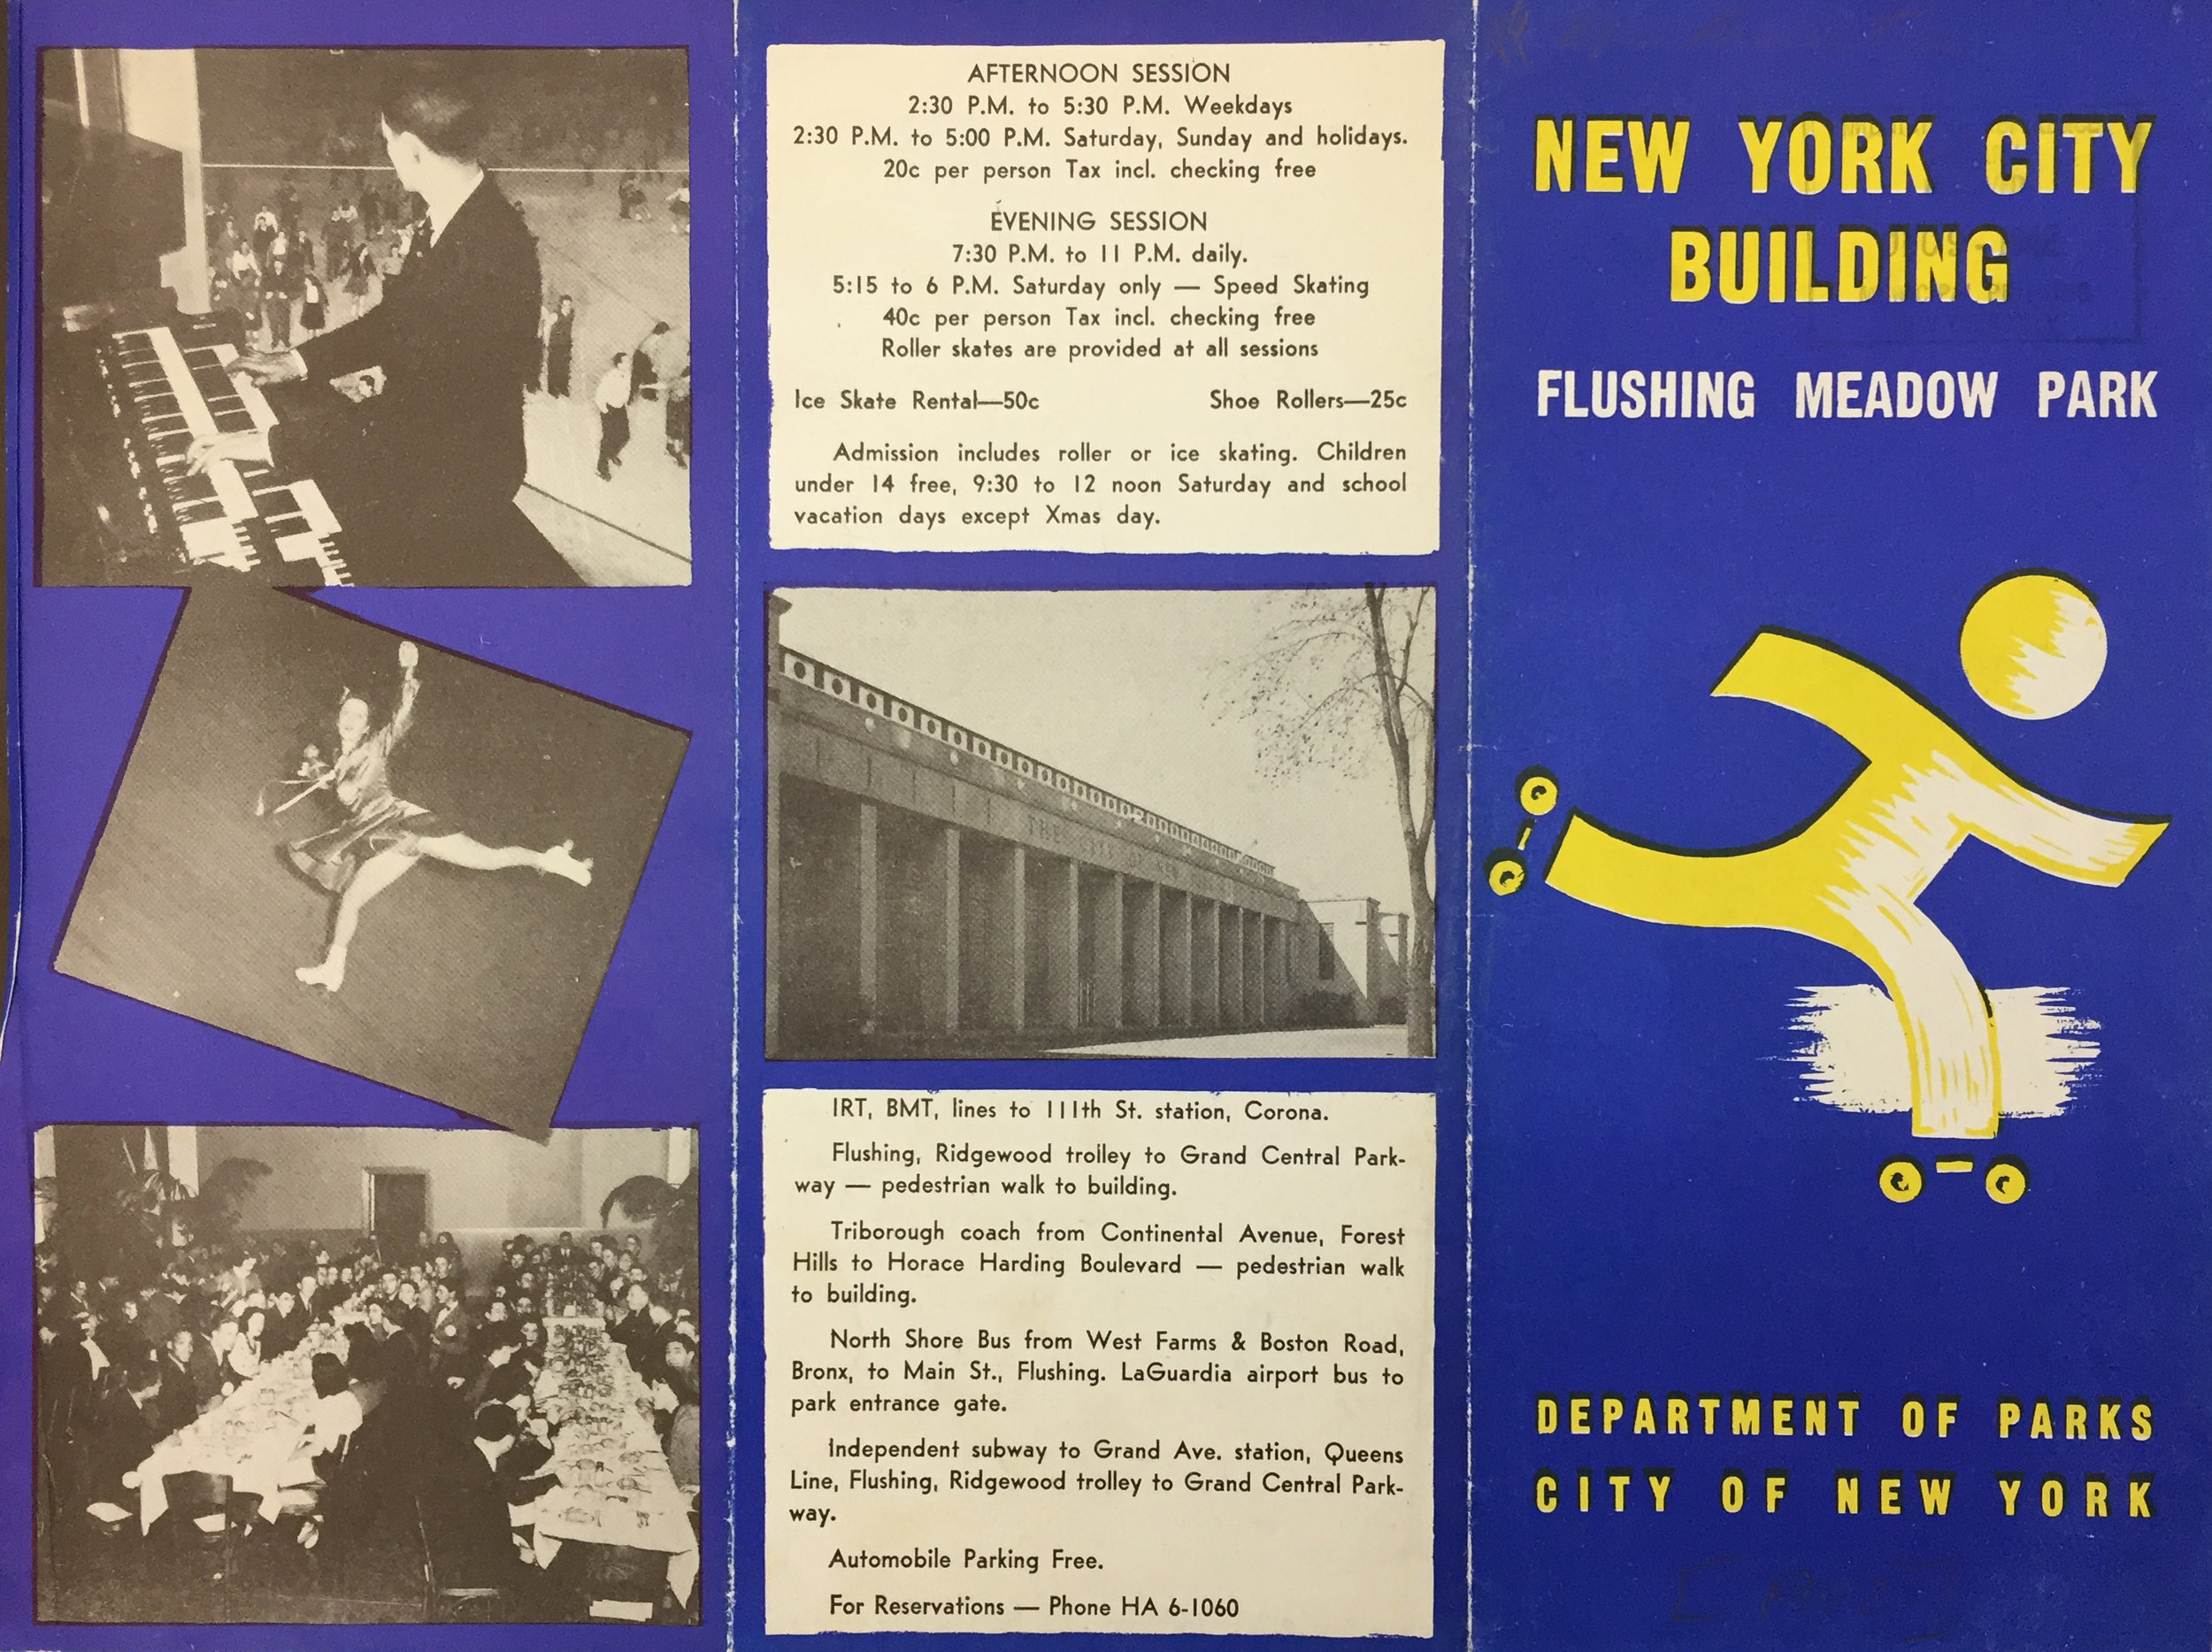 1942 brochure for indoor roller and ice skating rinks in the New York City Building. Built for the 1939 World's Fair, from 1946 to 1950 the building was the home of the United Nations General Assembly. It is now home to the Queens Museum. NYC Municipal Library.